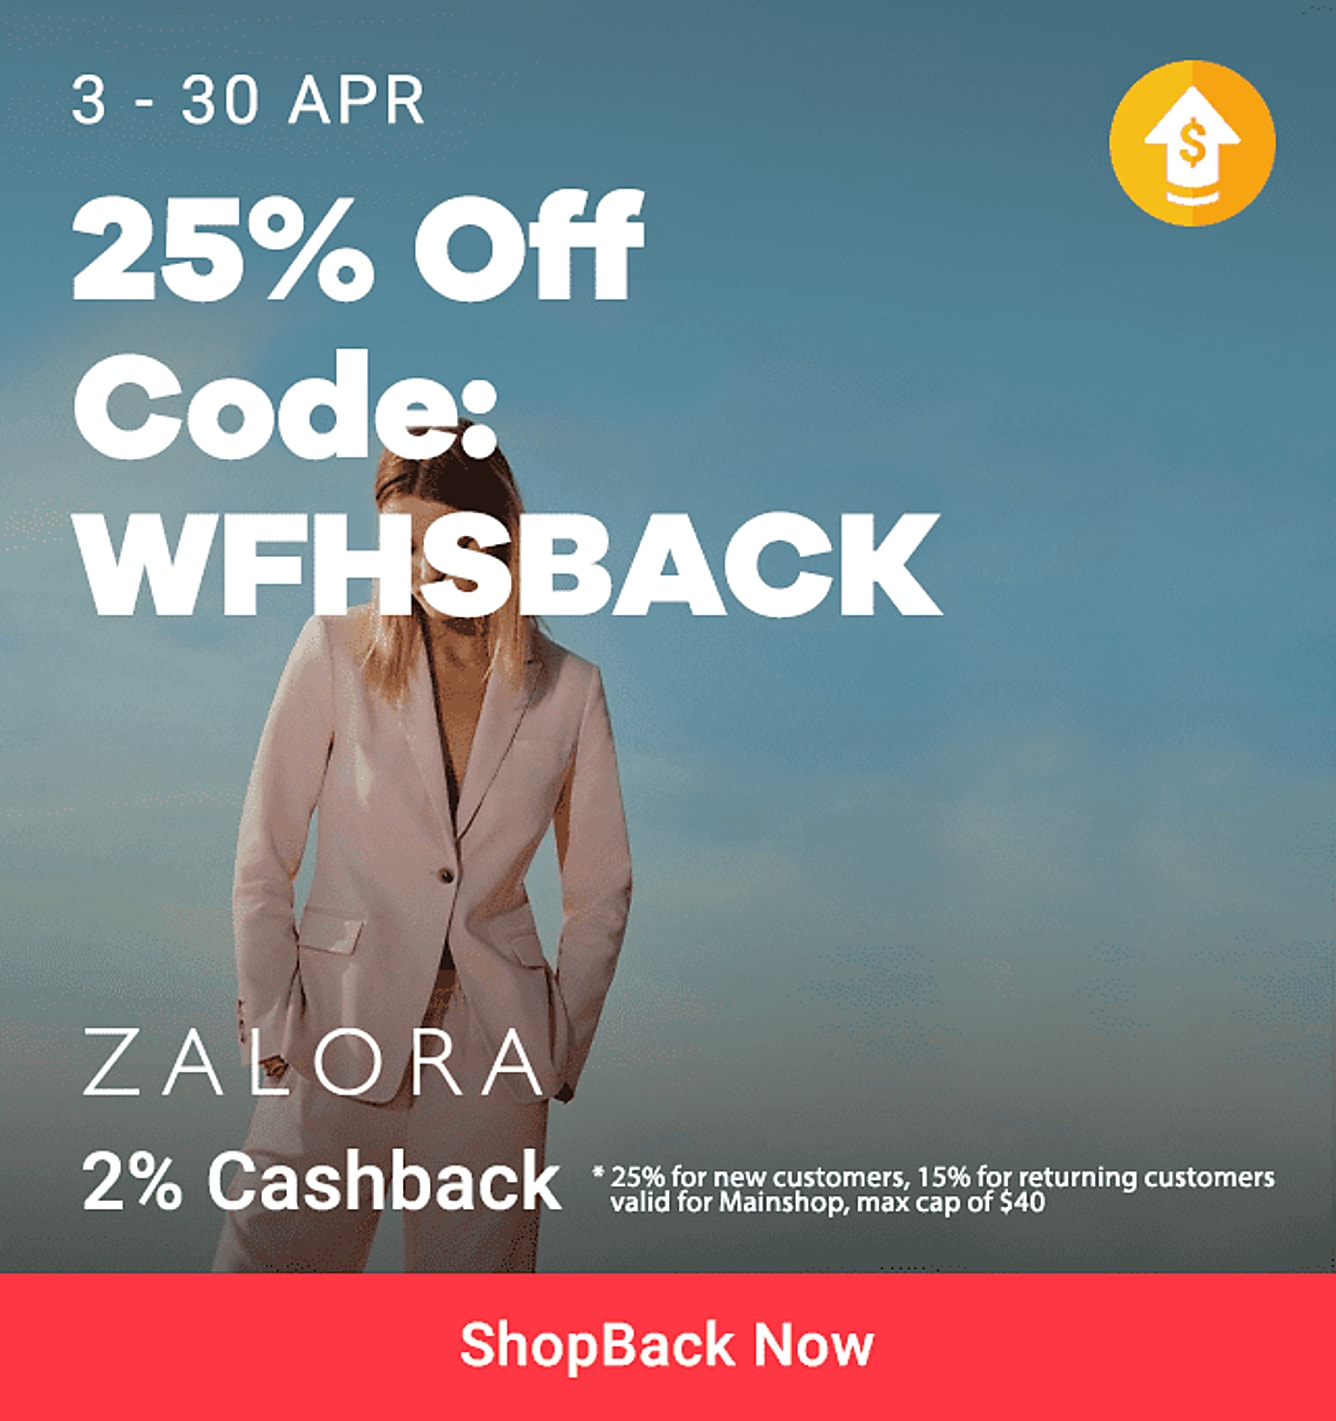 Zalora_Promo Code_1 Apr-6 Apr 11am 2020